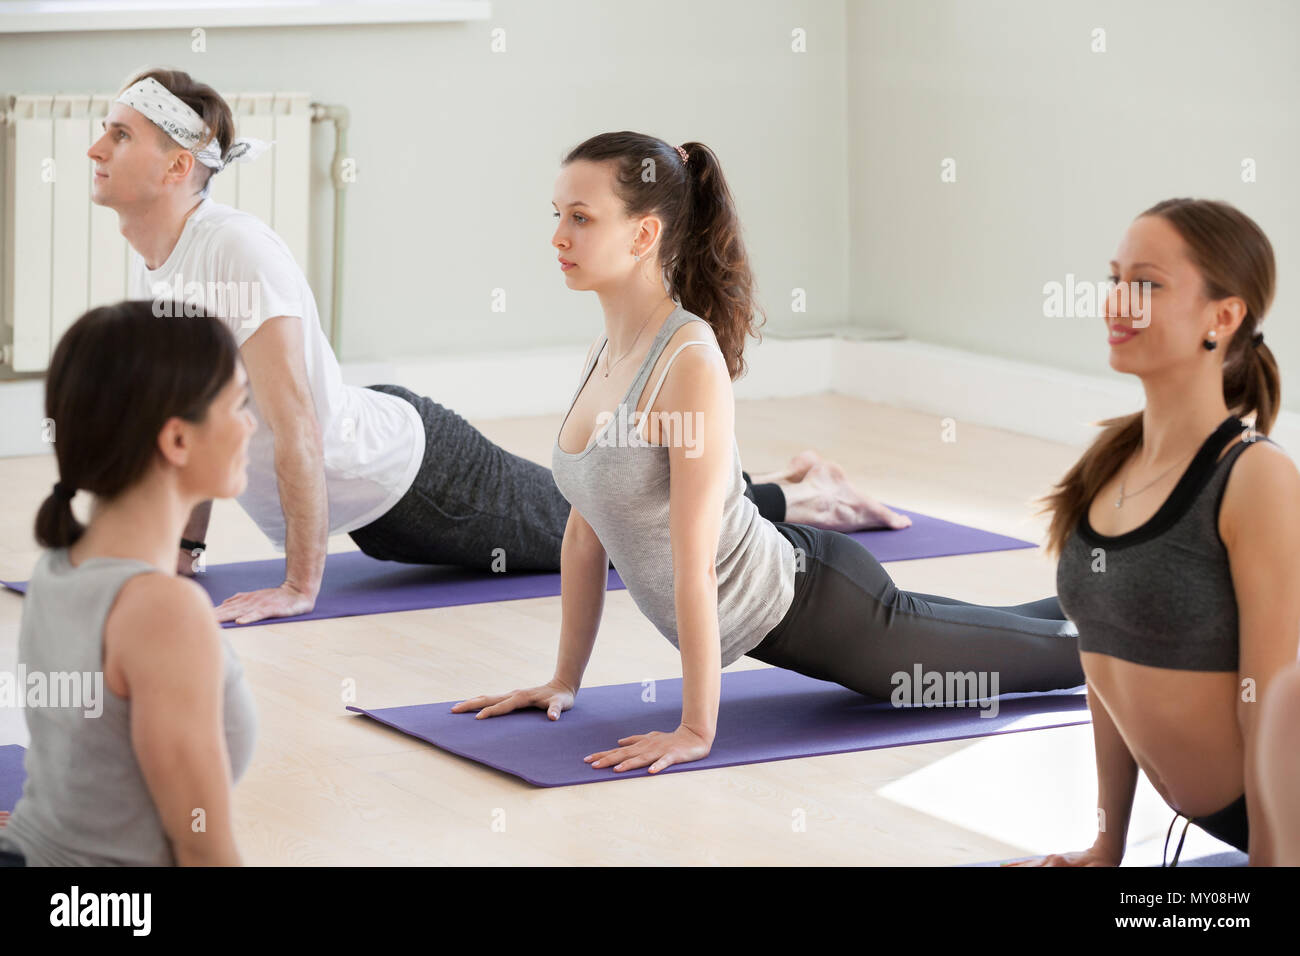 Group of young sporty people practicing yoga lesson, doing upward facing dog exercise, Urdhva mukha shvanasana pose, working out, indoor close up, stu Stock Photo